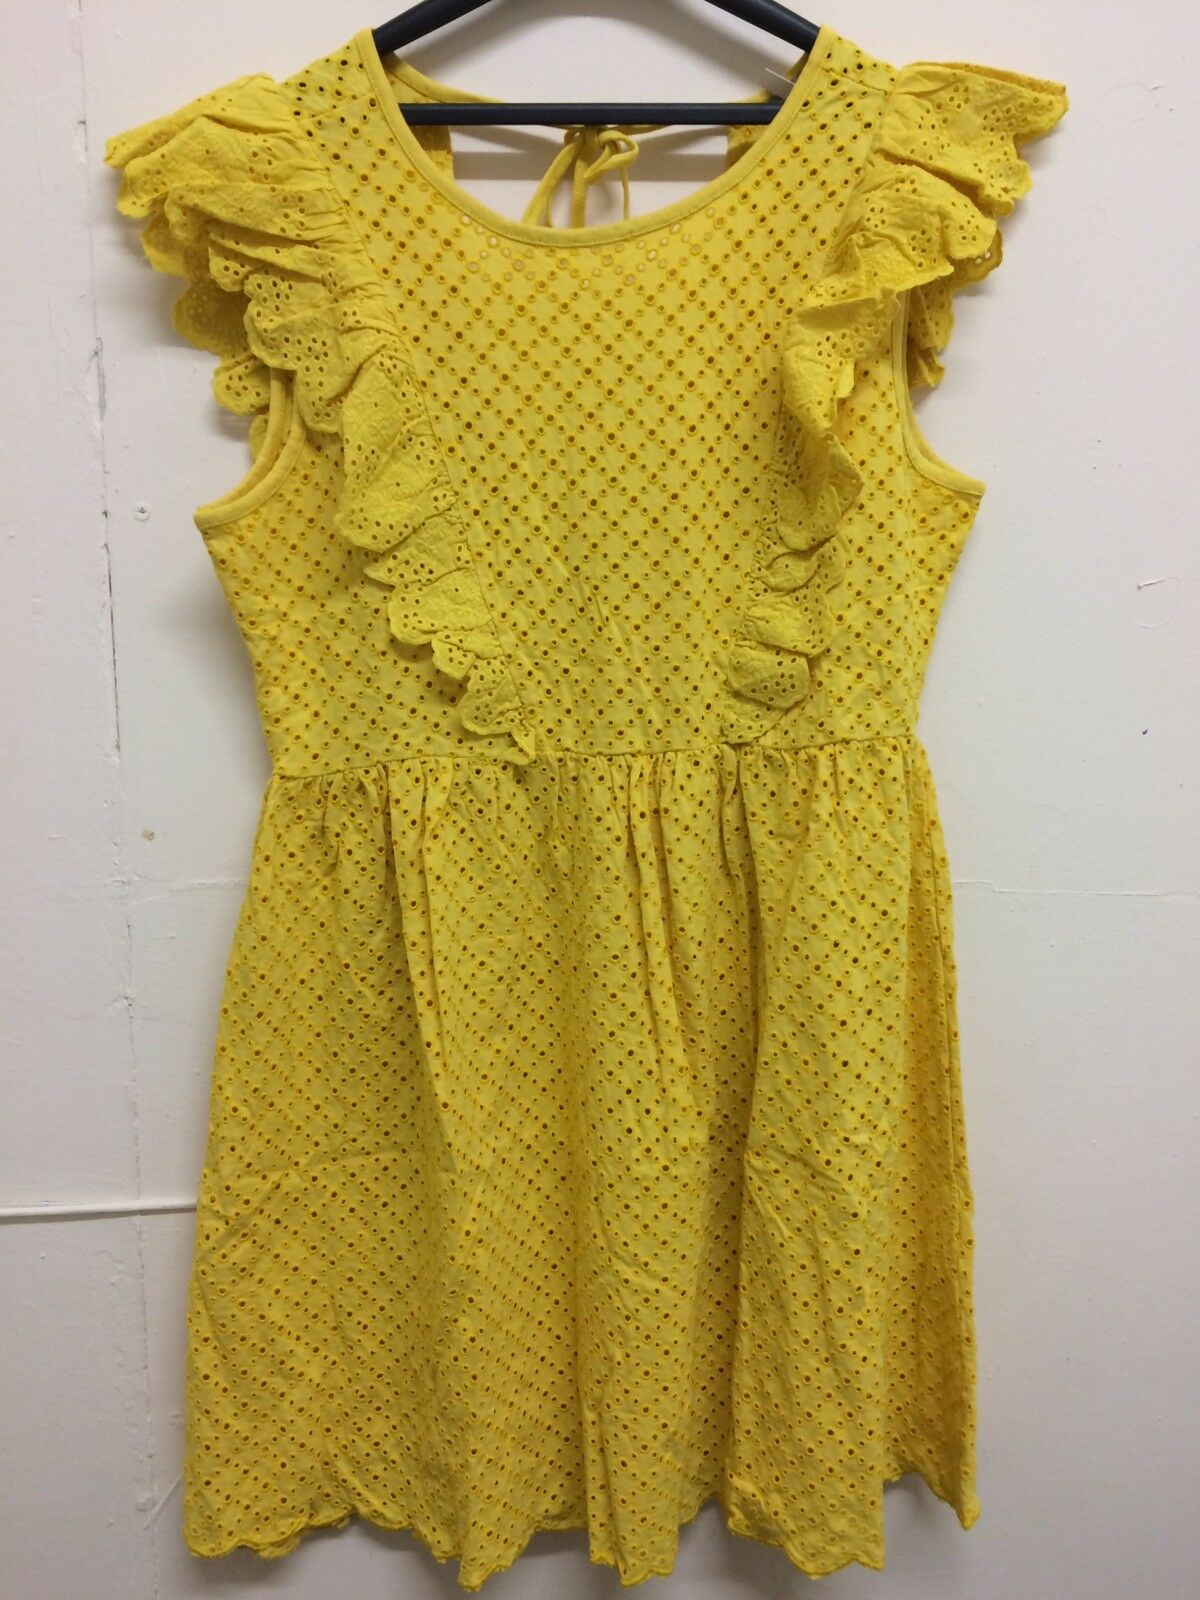 64dfa3c3da5 ASOS DESIGN broderie sundress with frill sleeves 16 .00 Box E86 Size RRP  nxxoaf19377-Dresses